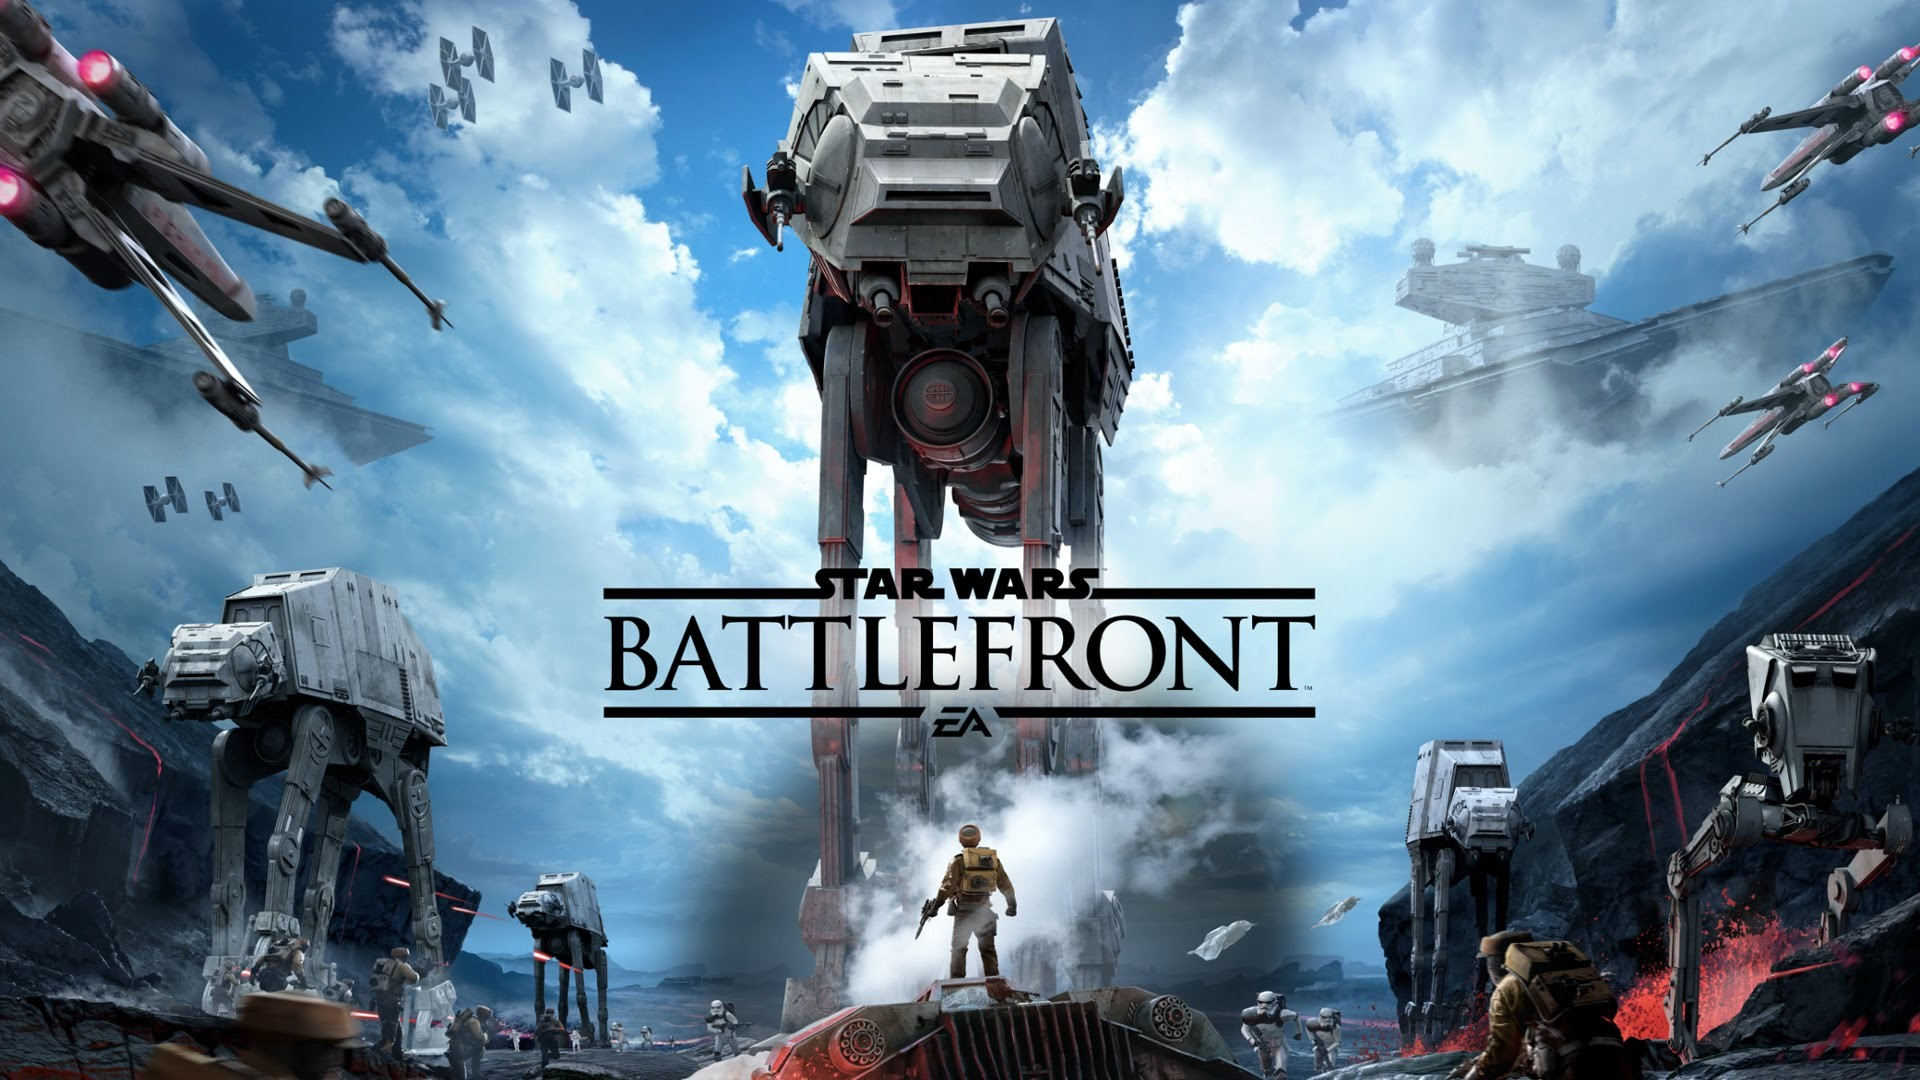 1920x1080 10 HD Star Wars Battlefront Wallpapers